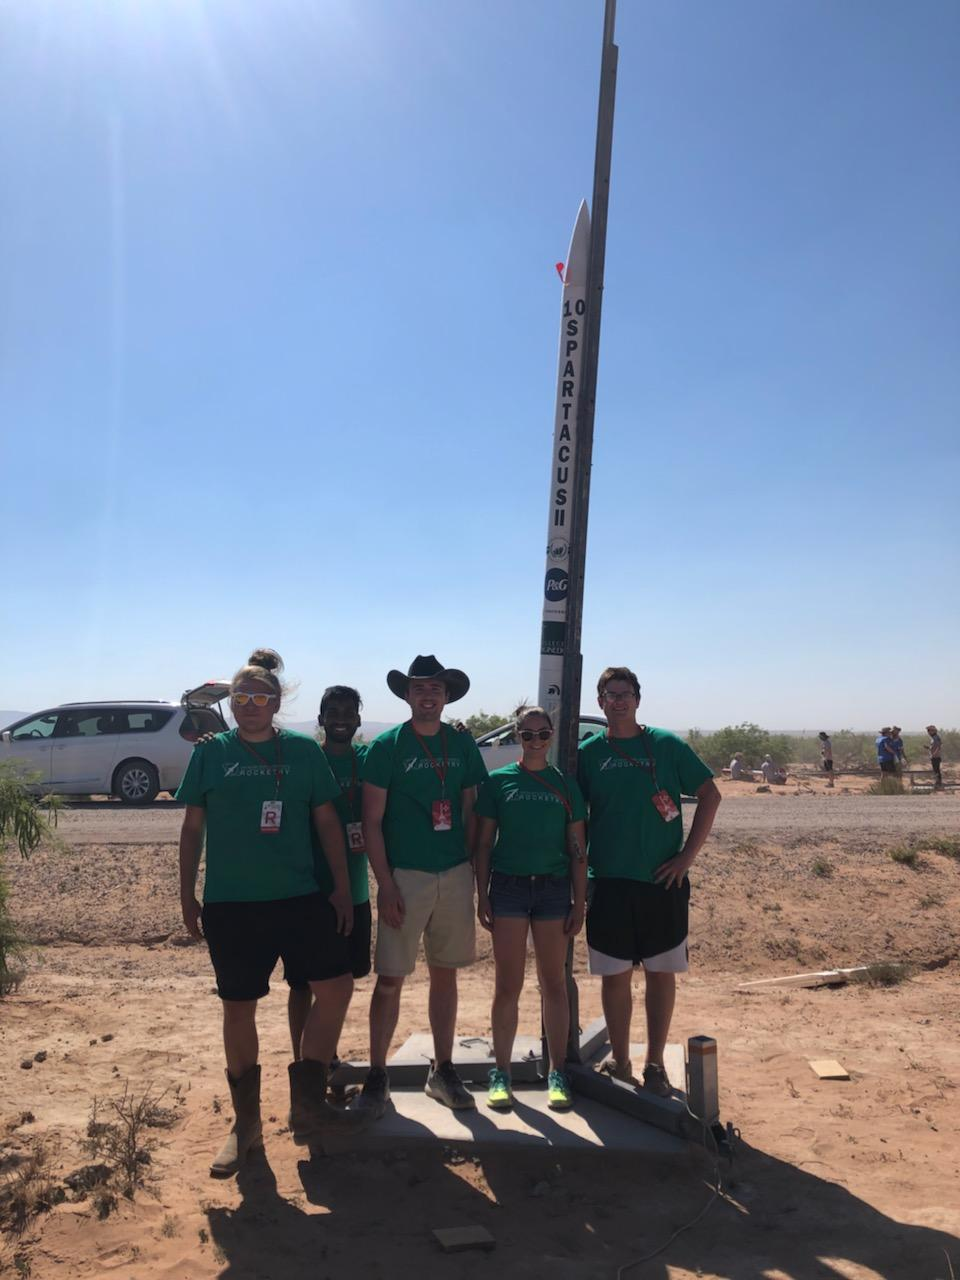 Members of the rocketry team in front of their newest rocket